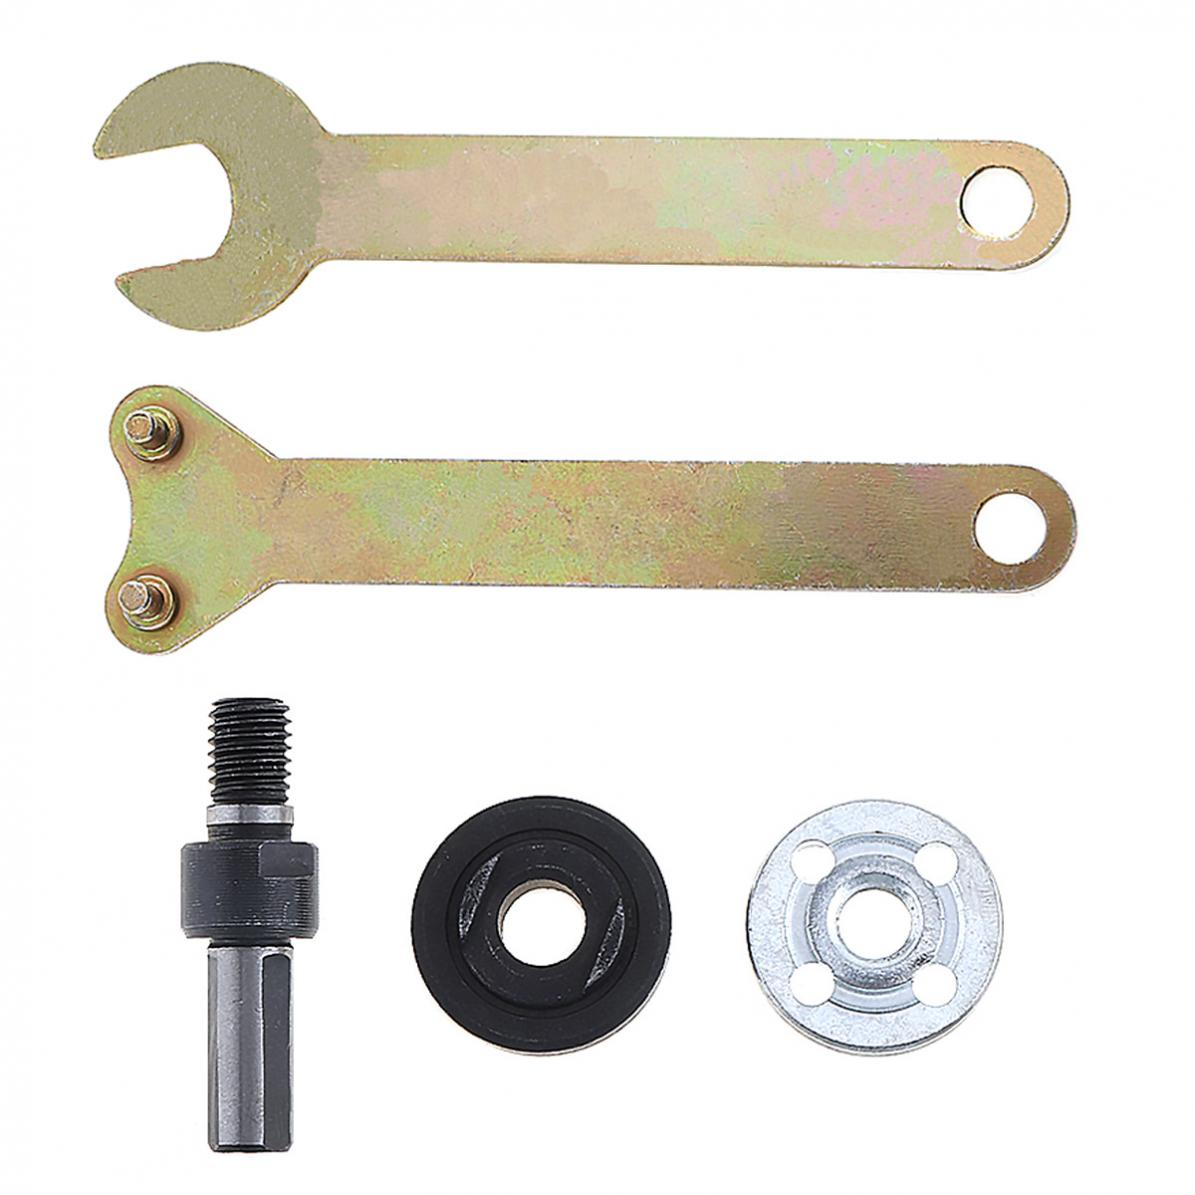 5pcs/pcs Angle Grinder Accessories With Connecting Rod And Small Wrench For Conversion Angle Grinding Tool Accessories